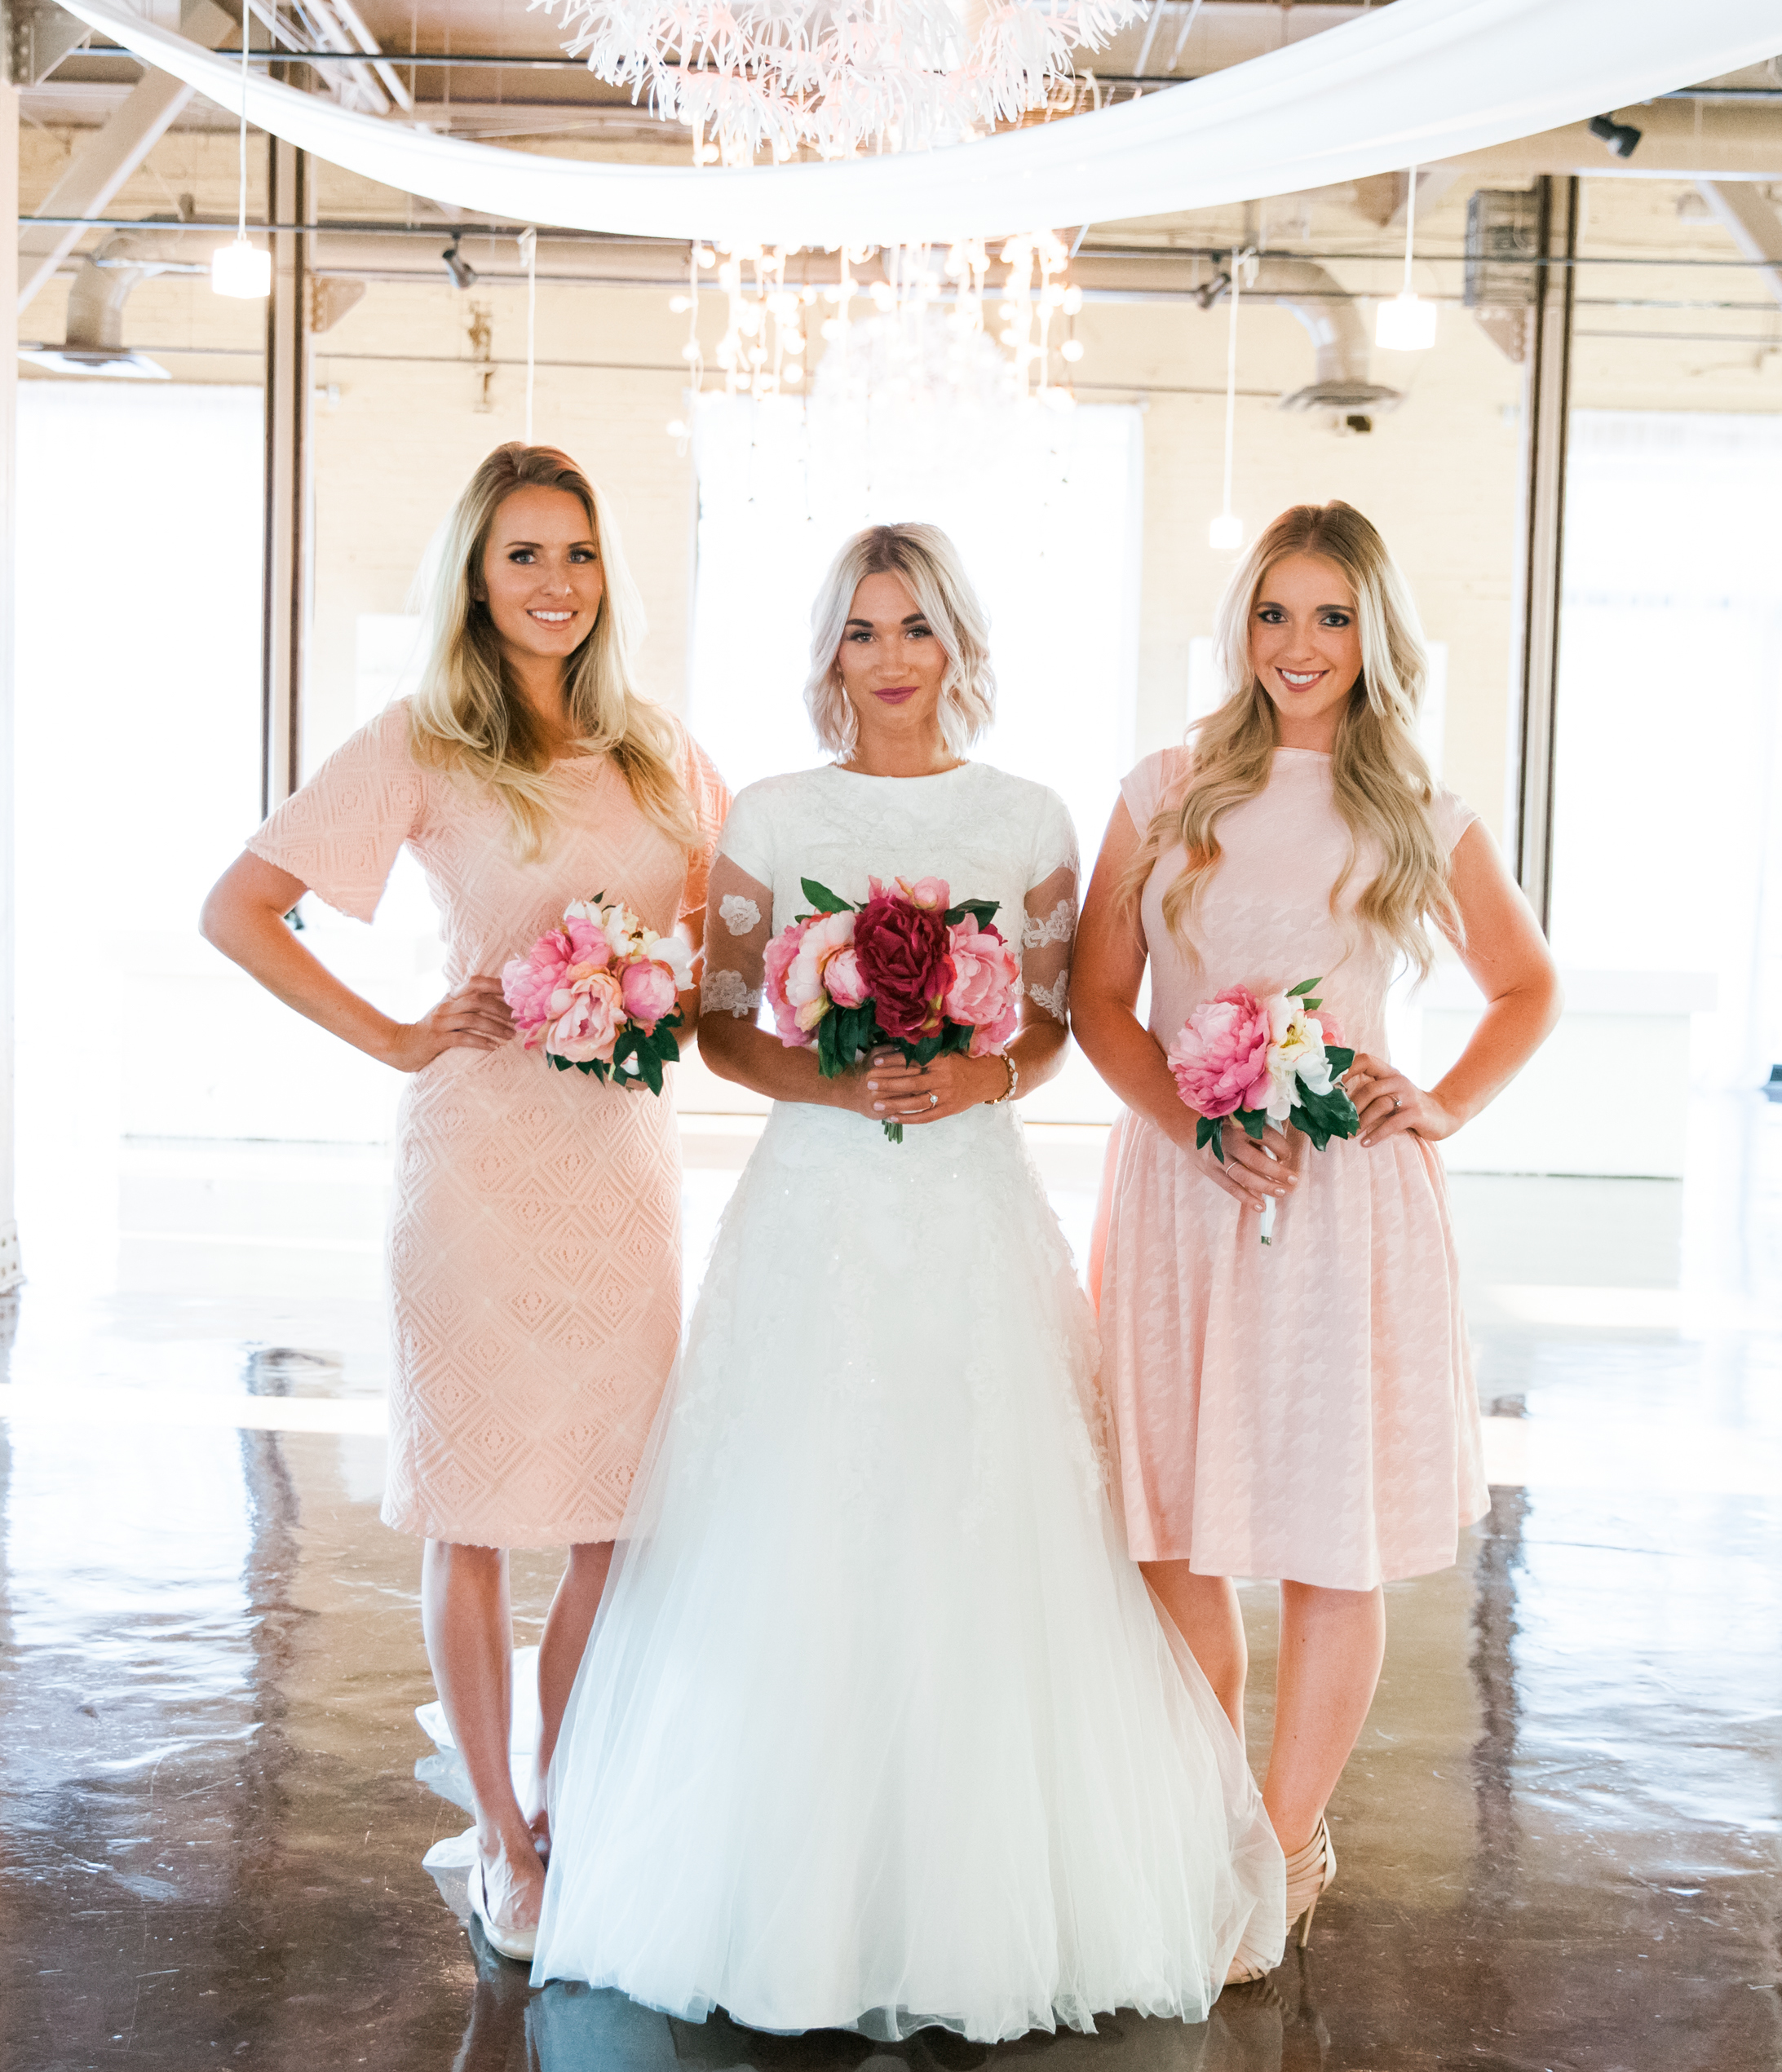 Rethinking bridesmaid dresses madamandrews for our next section we dared to do the unthinkable we styled white bridesmaid dresses with polka dotswhat arent you not supposed to wear white to a ombrellifo Images